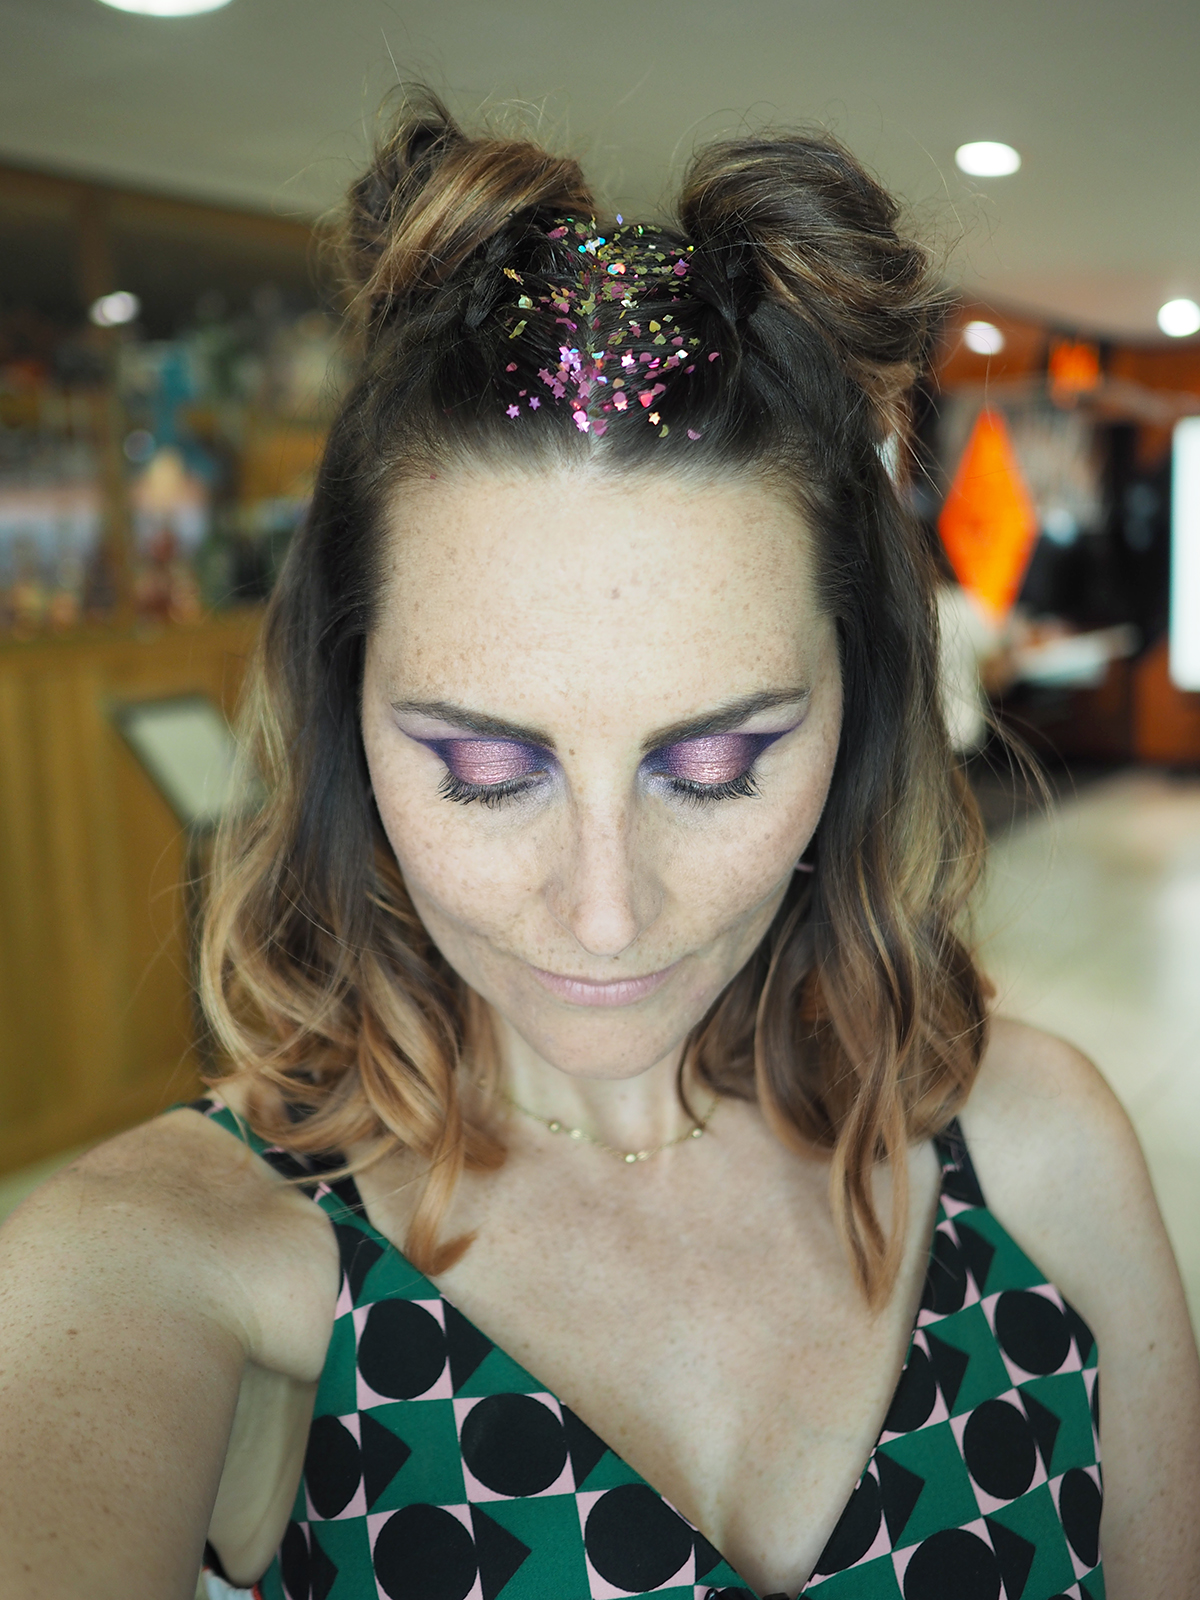 space bun hair with glitter festival makeup